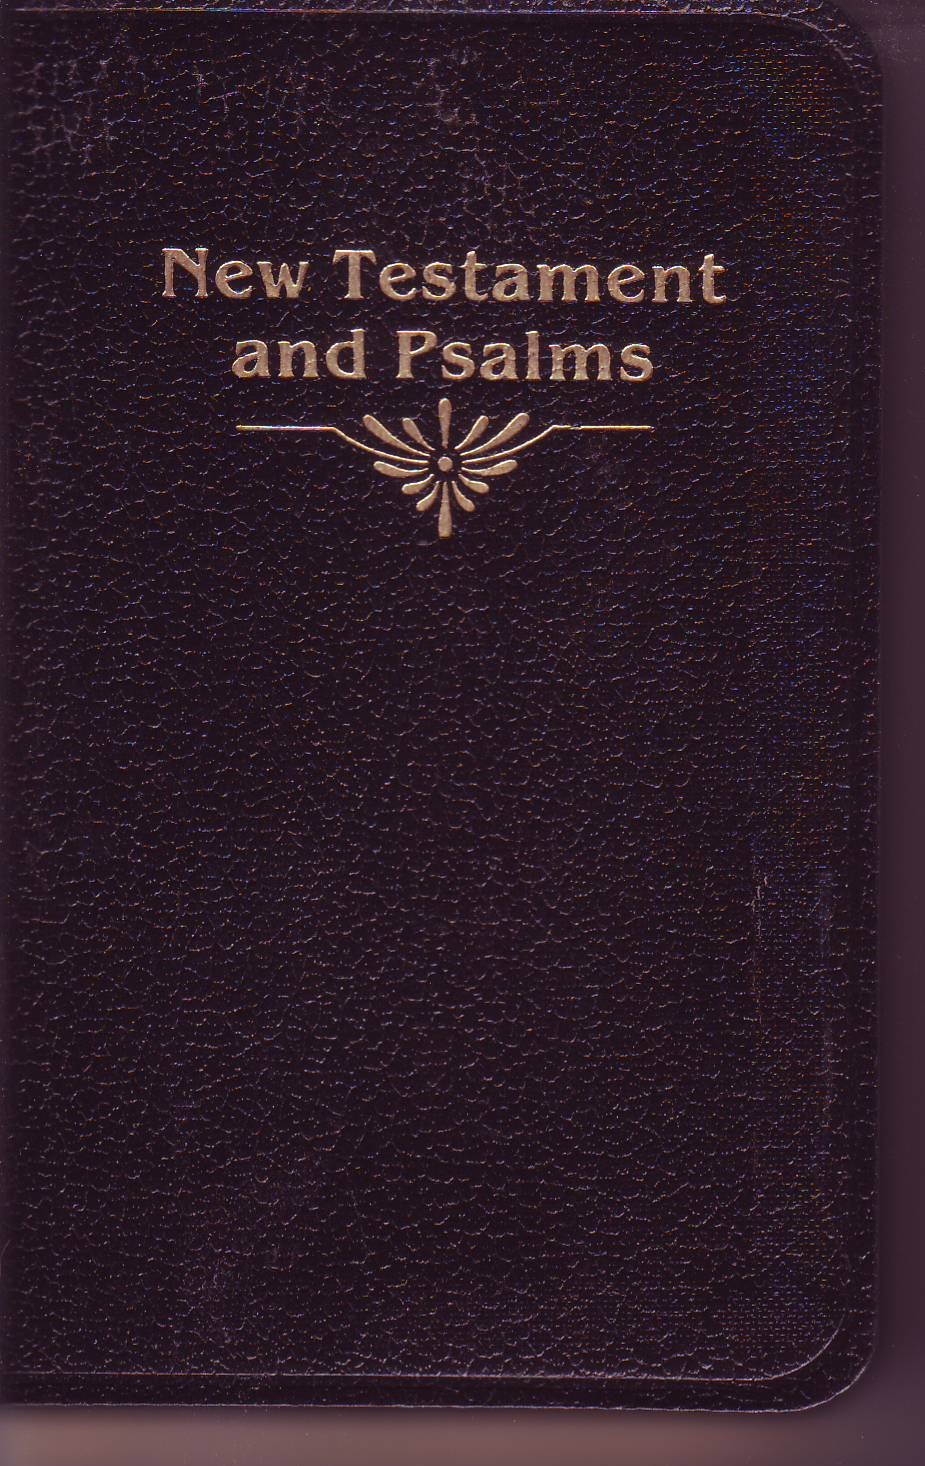 New Testament & Psalms - KJV